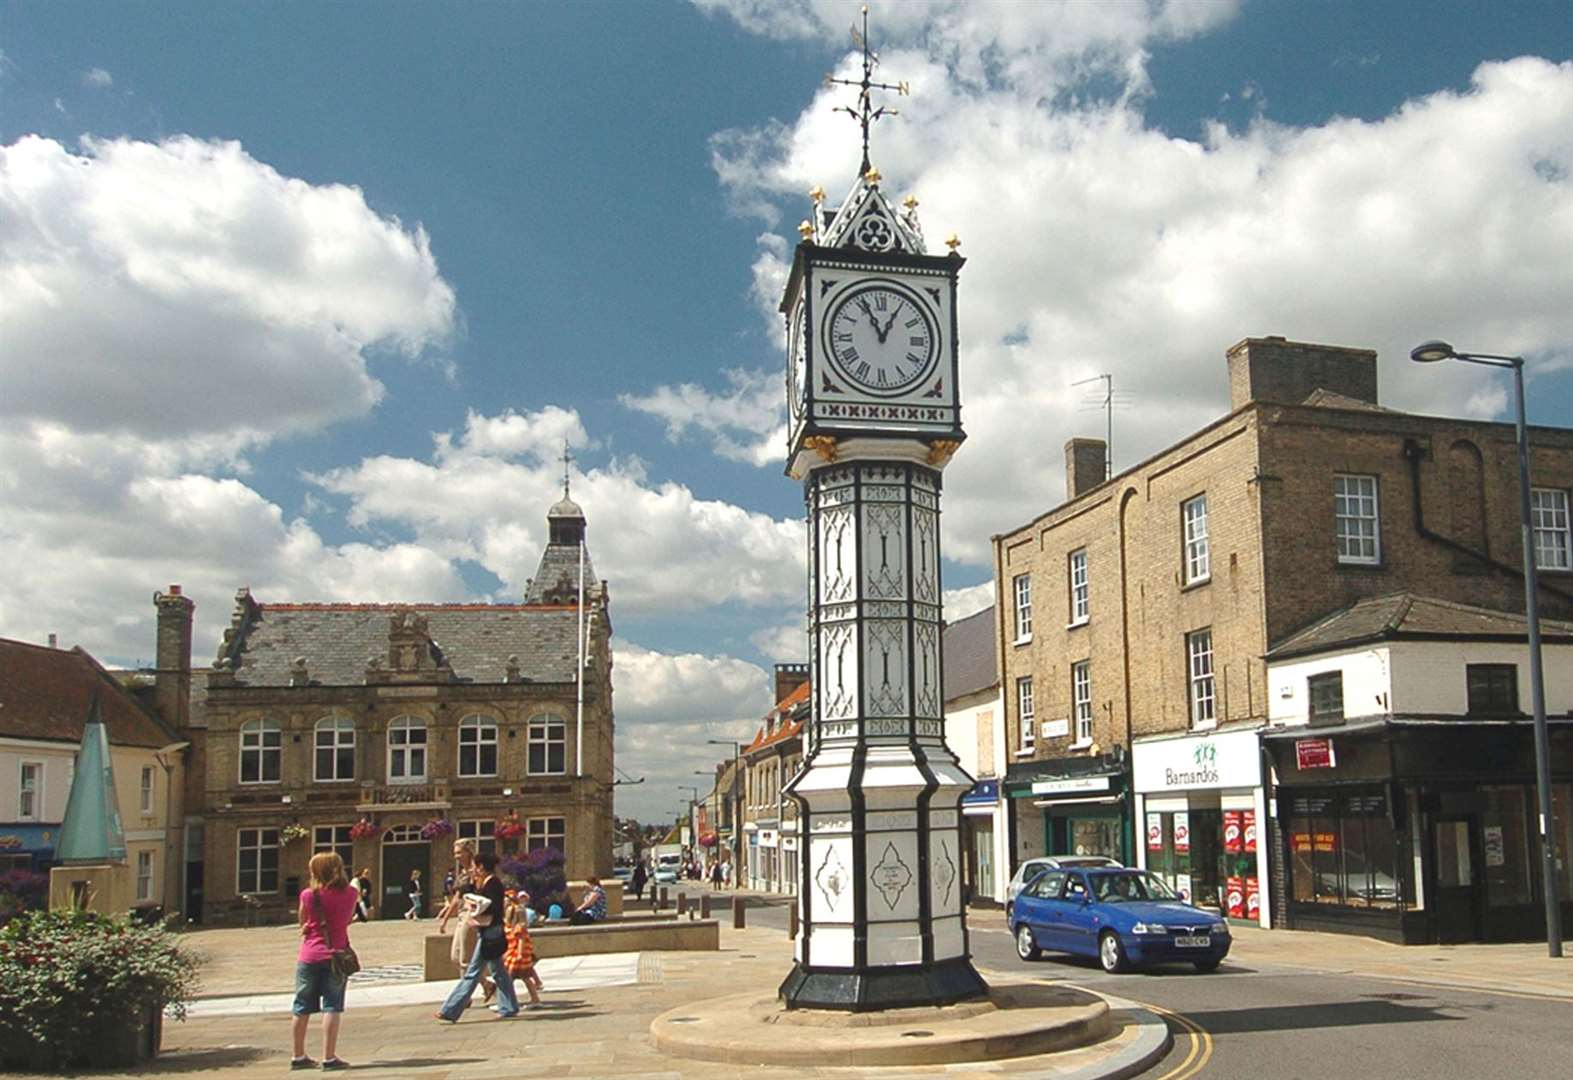 New awards to be held in Downham Market this year recognising town's heroes